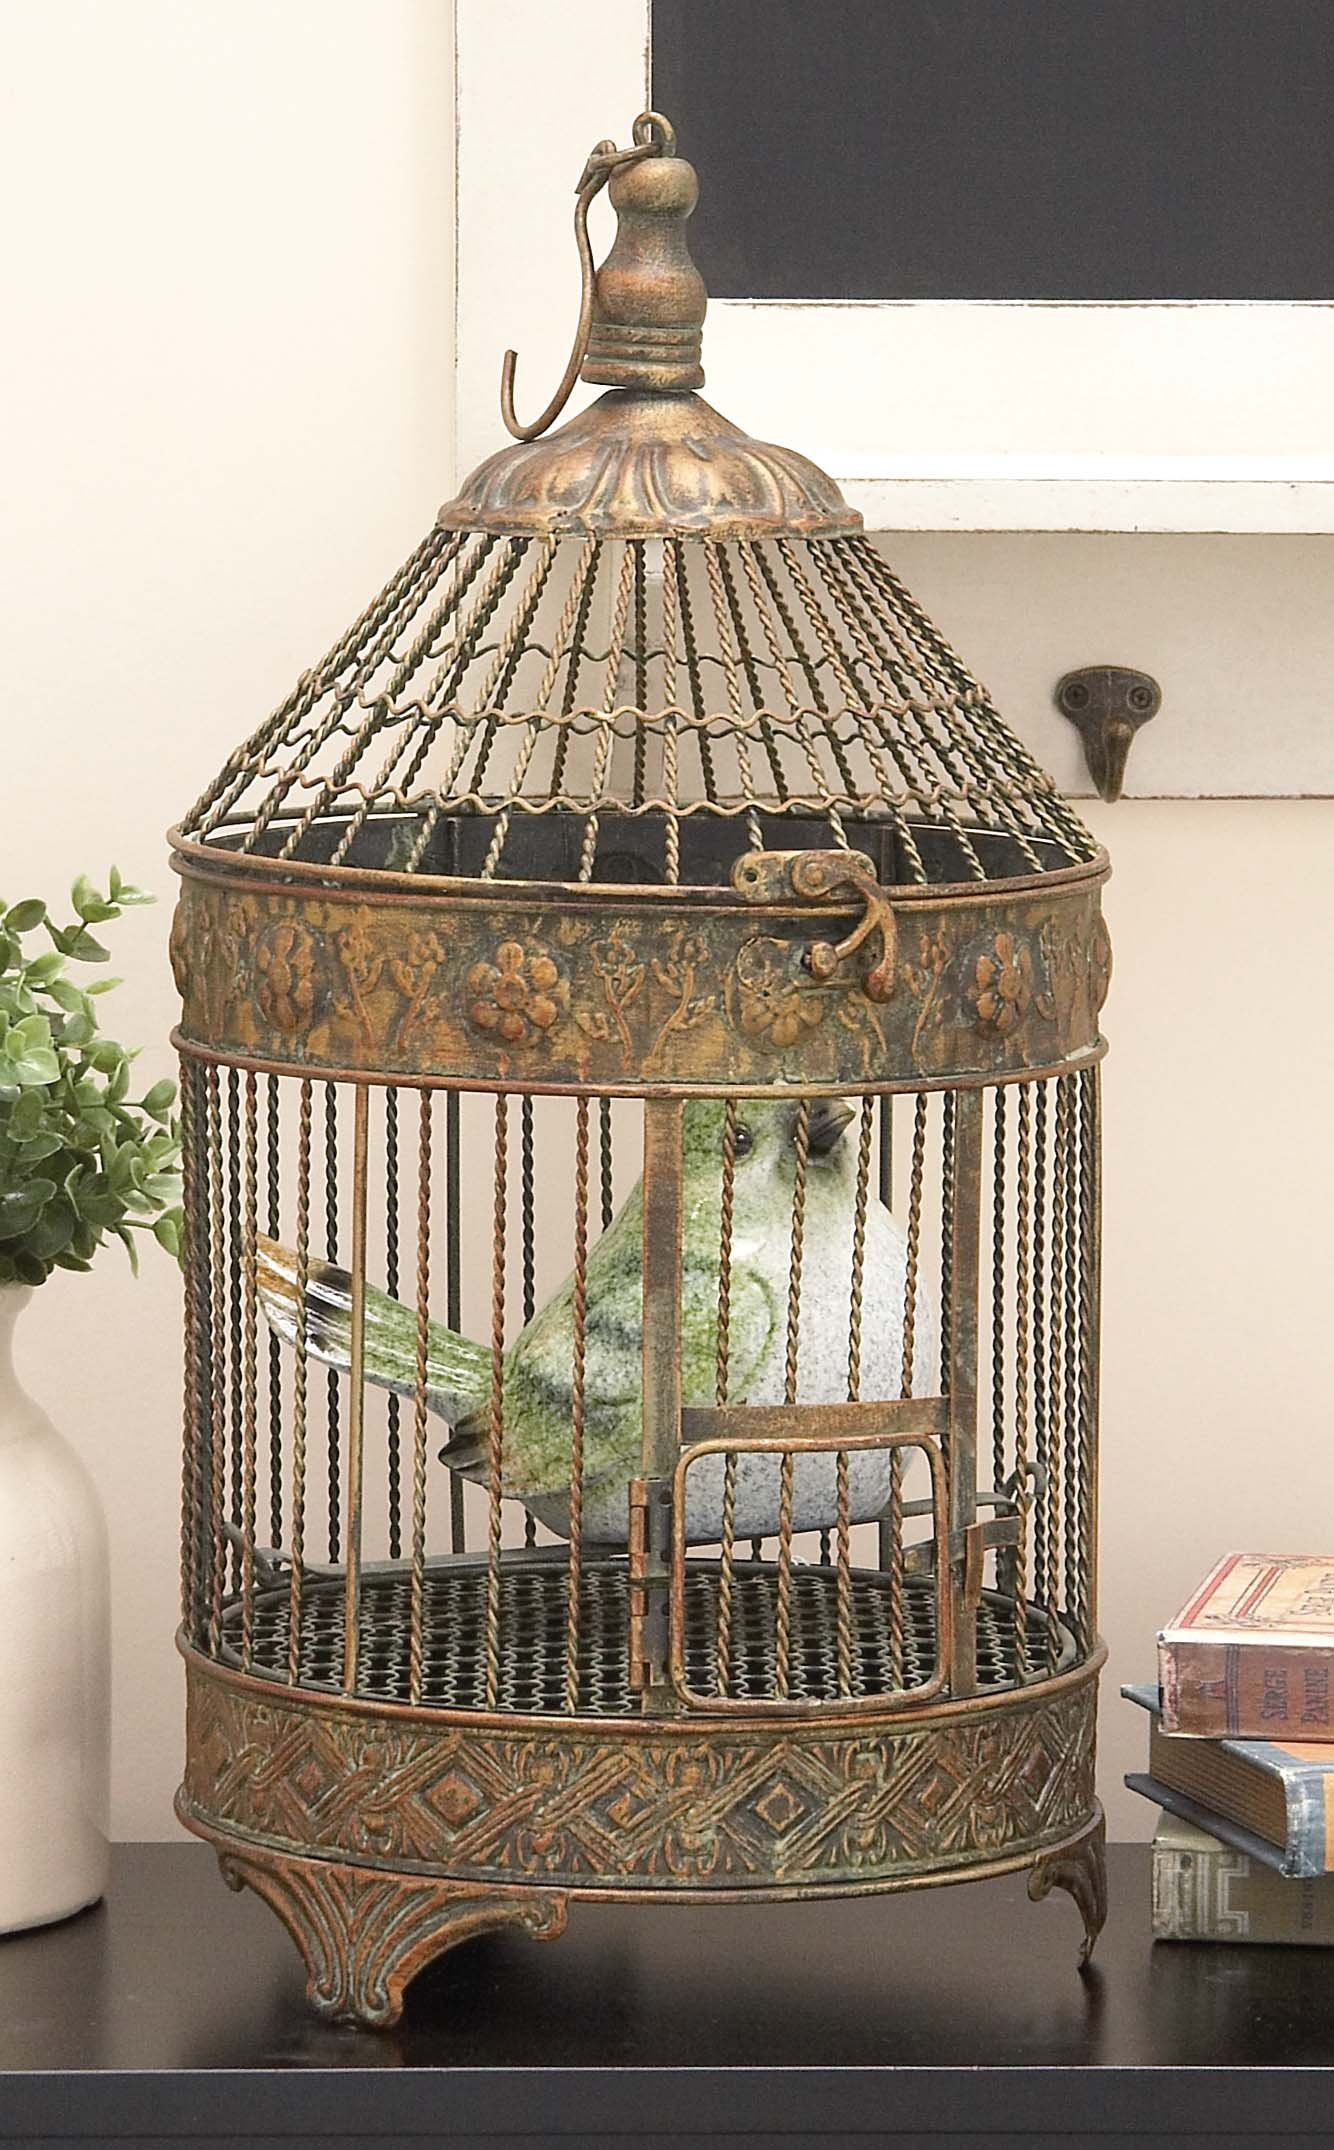 Deco 79 Metal Bird Cage, 24-Inch and 16-Inch, Set of 2 by Deco 79